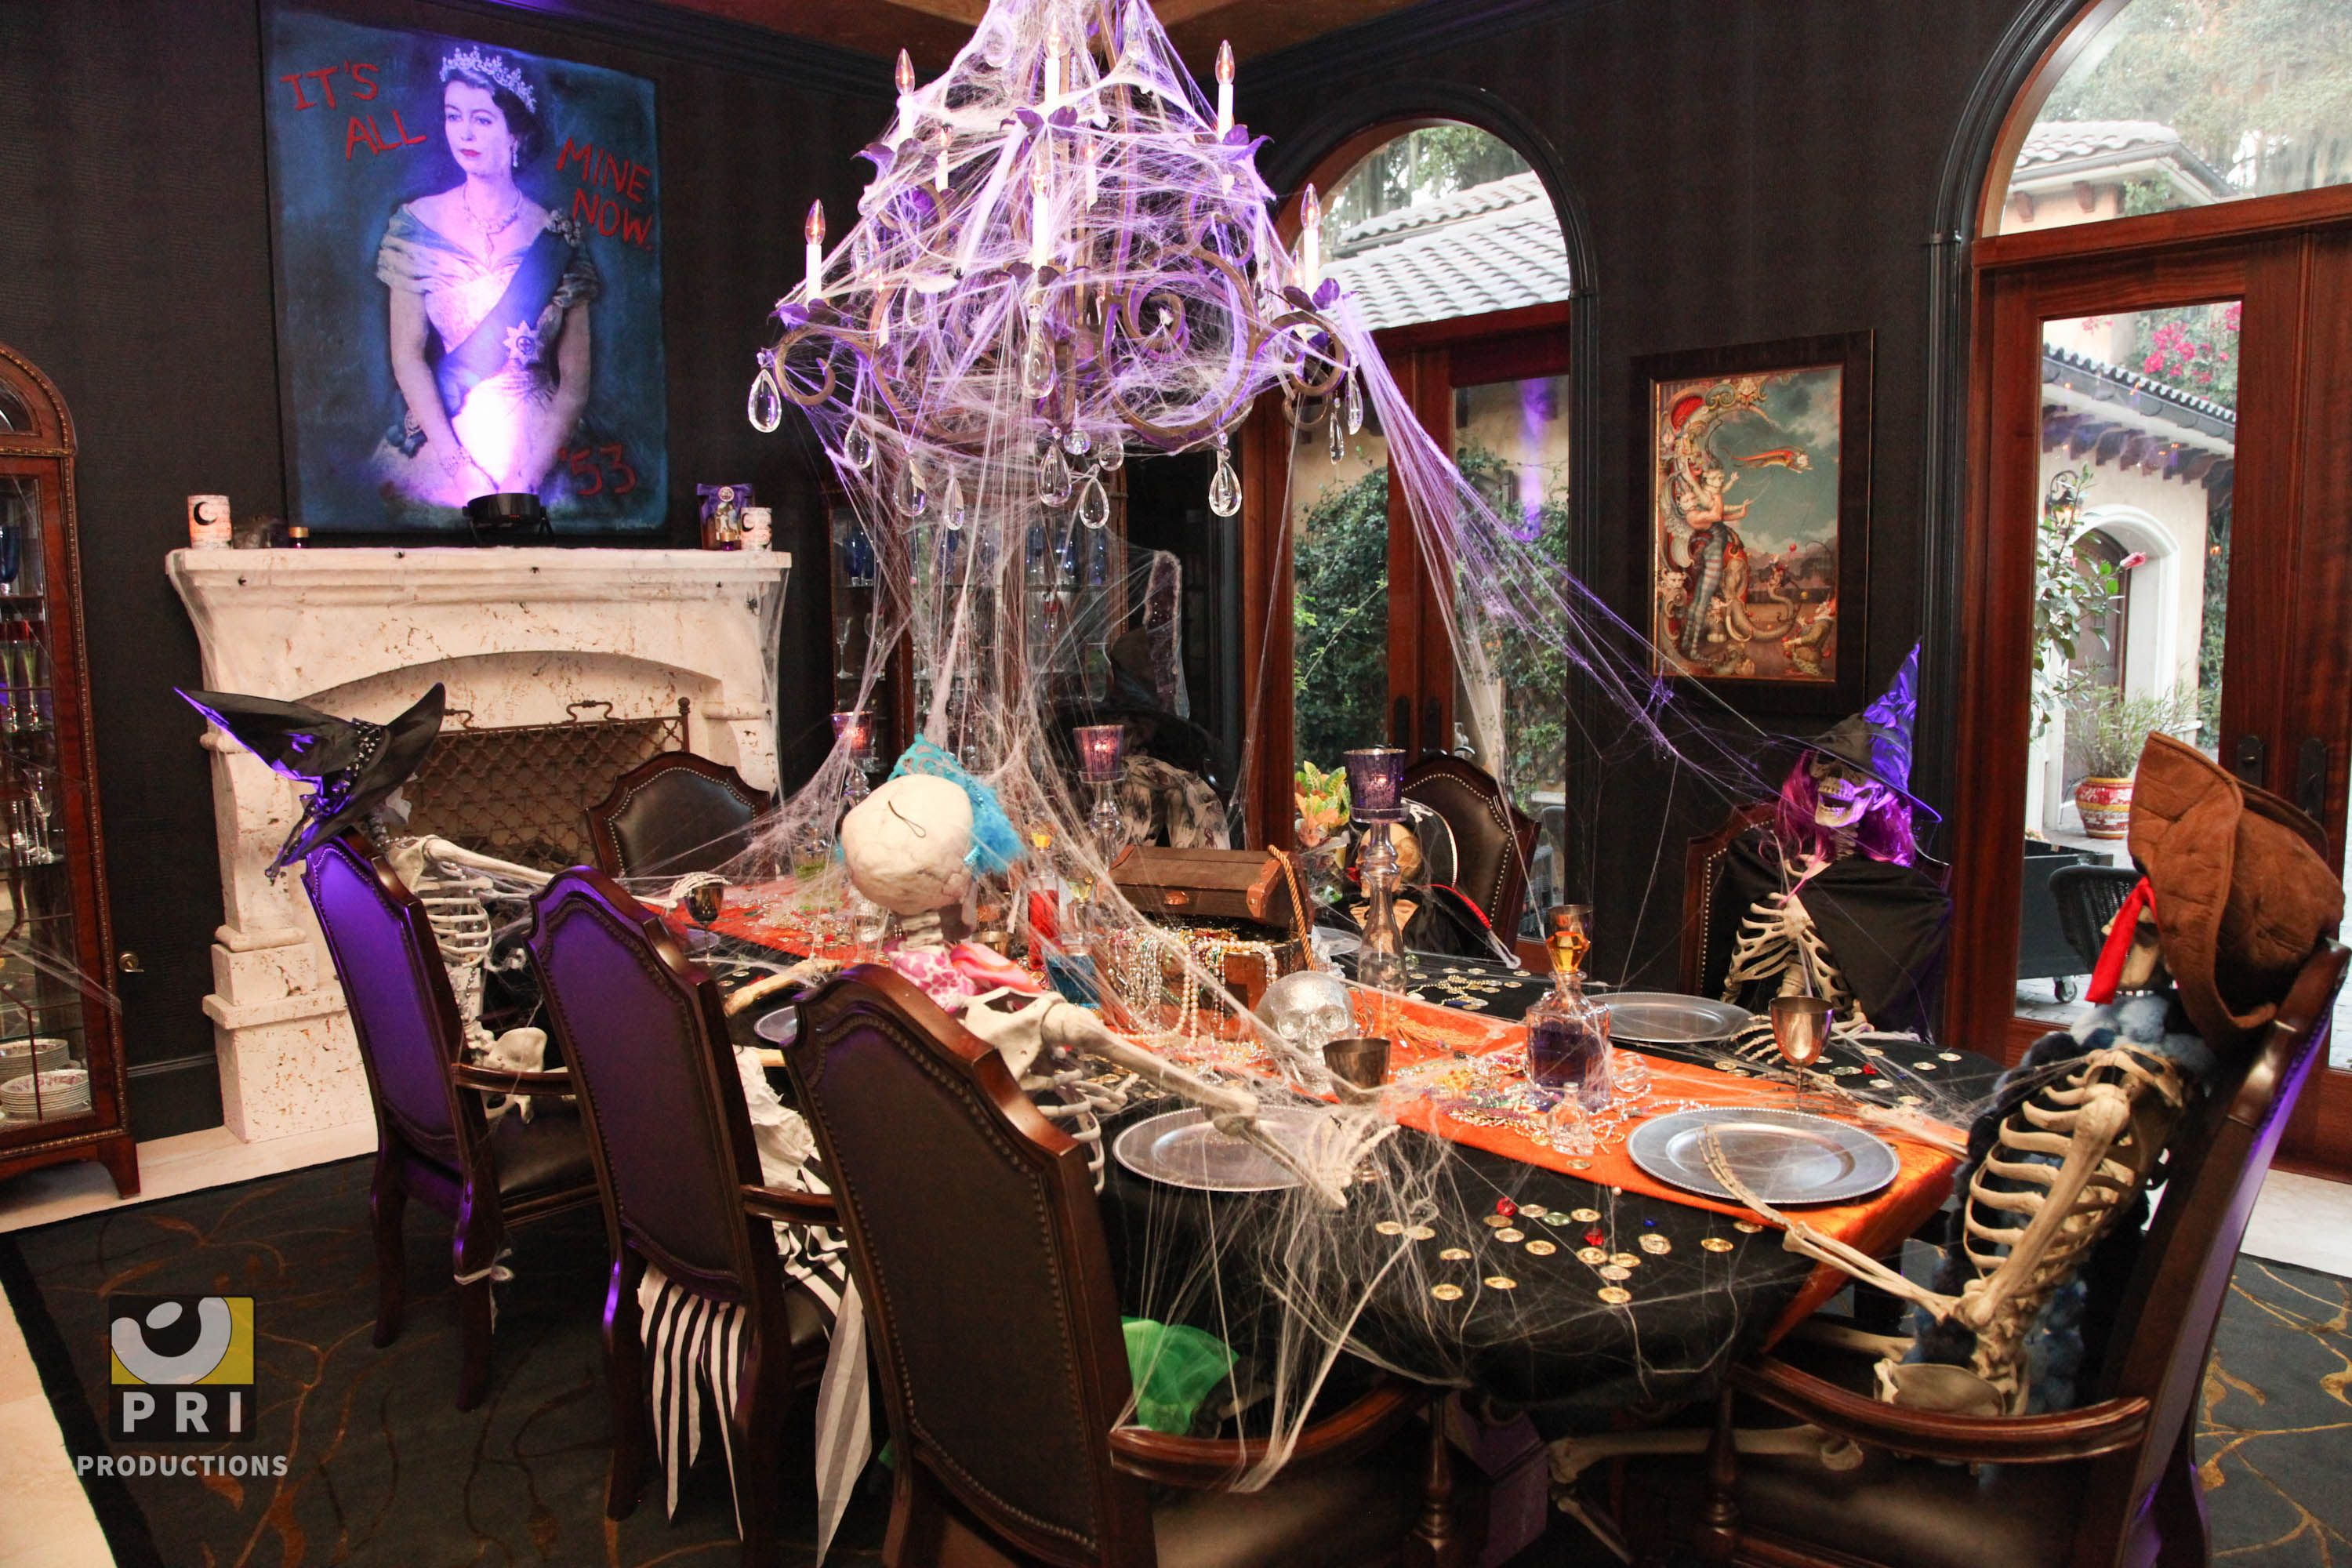 Spooky Pirate Themed Halloween Party Decor